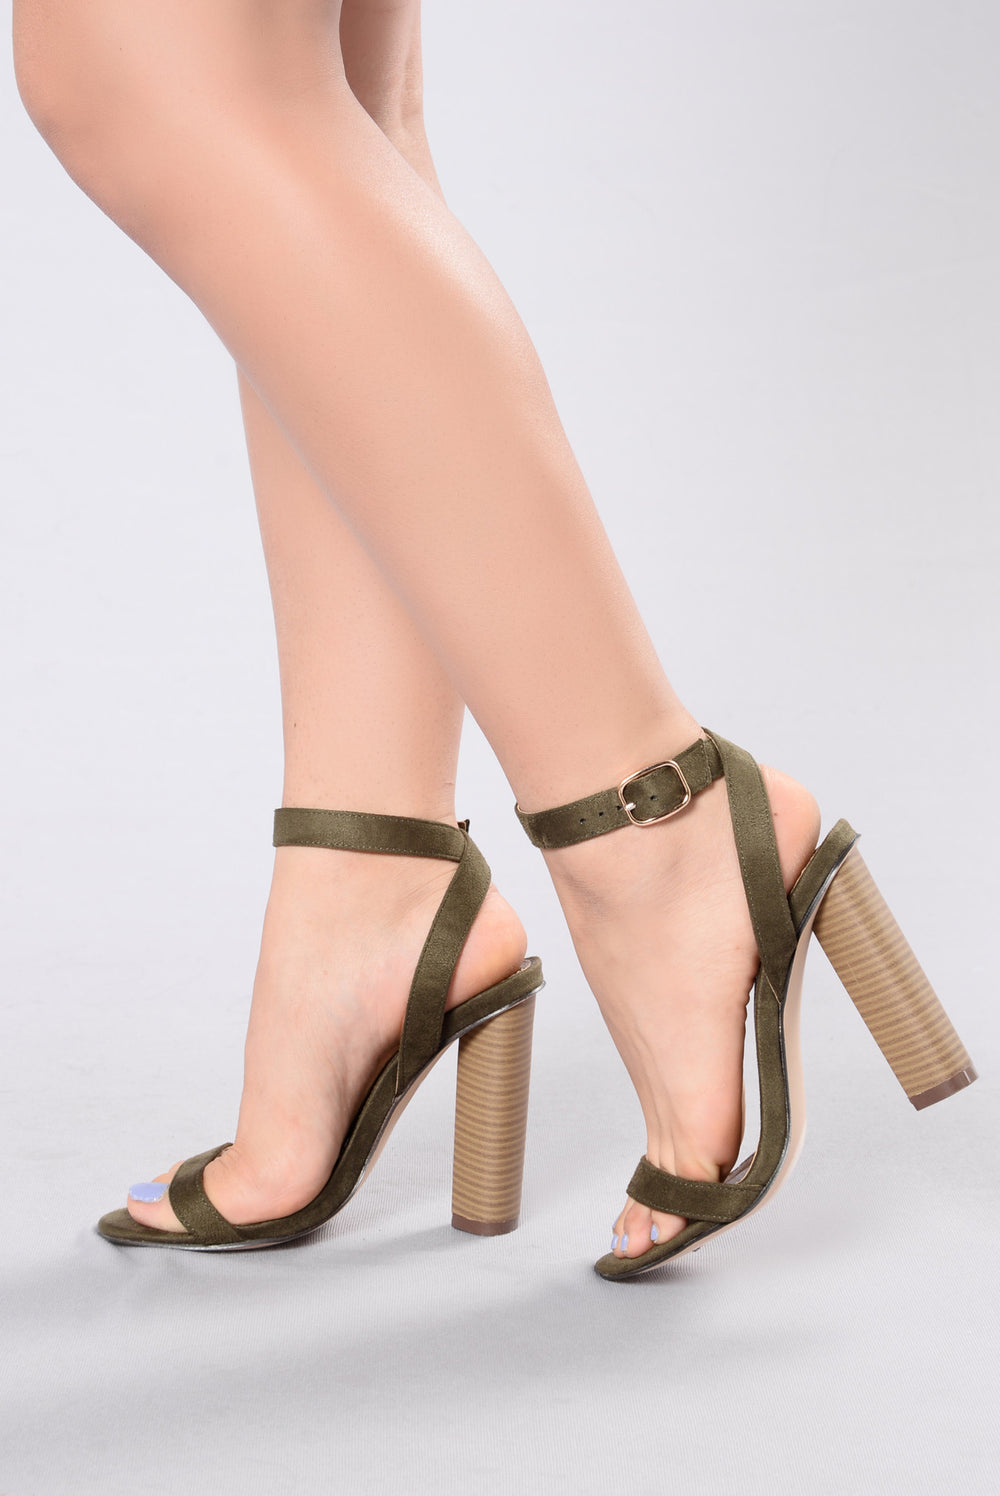 Simple And Sleek Heel - Olive